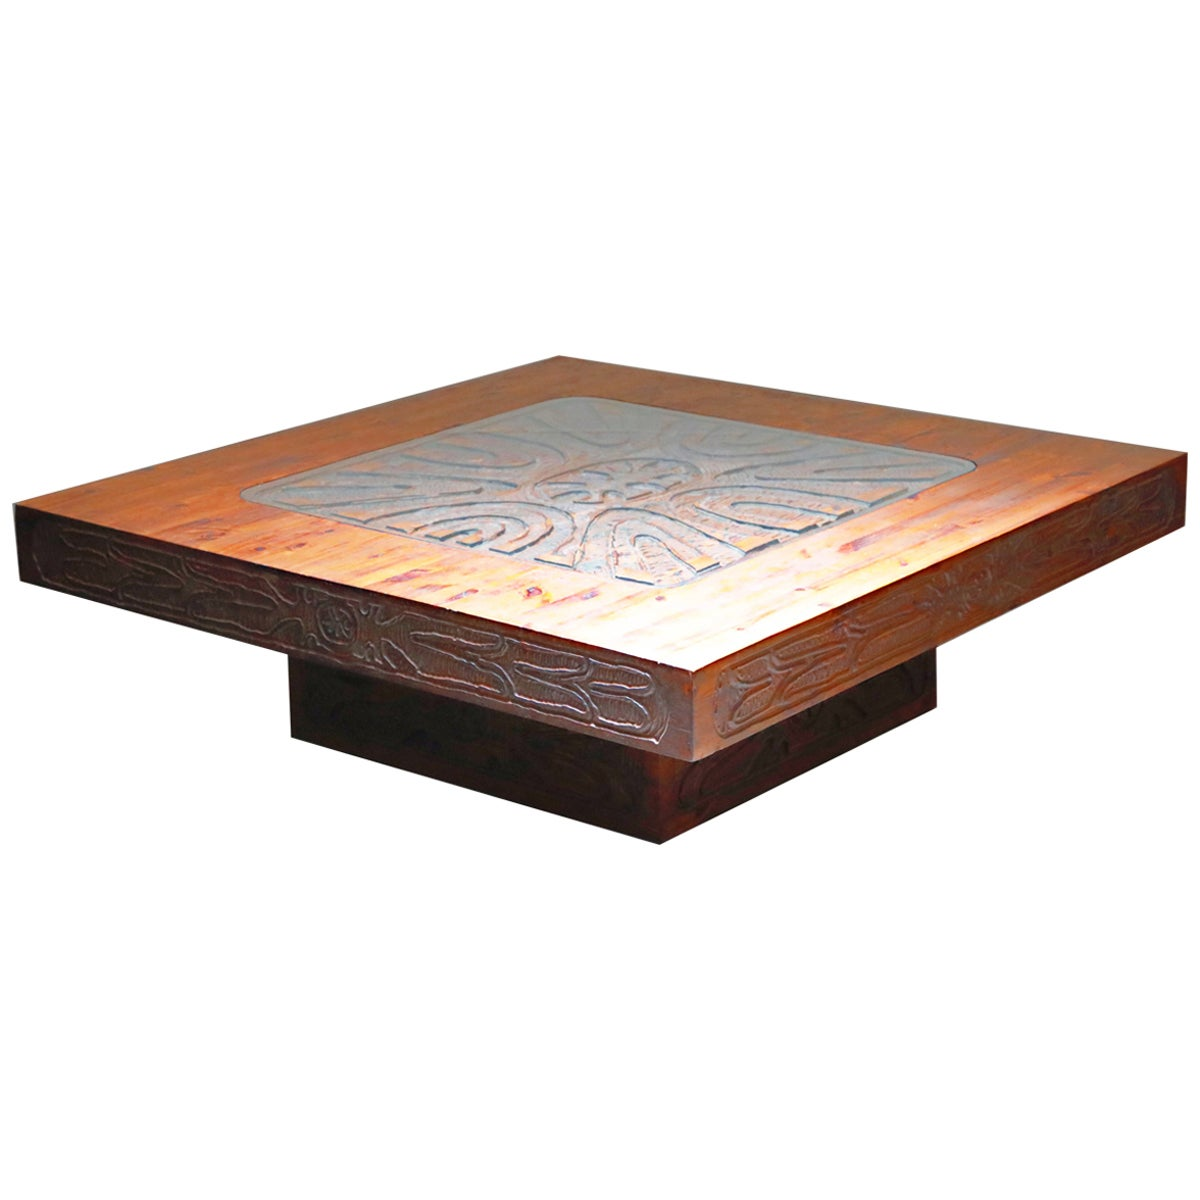 Mexican Modern Carved Wood Coffee Table, circa 1970s